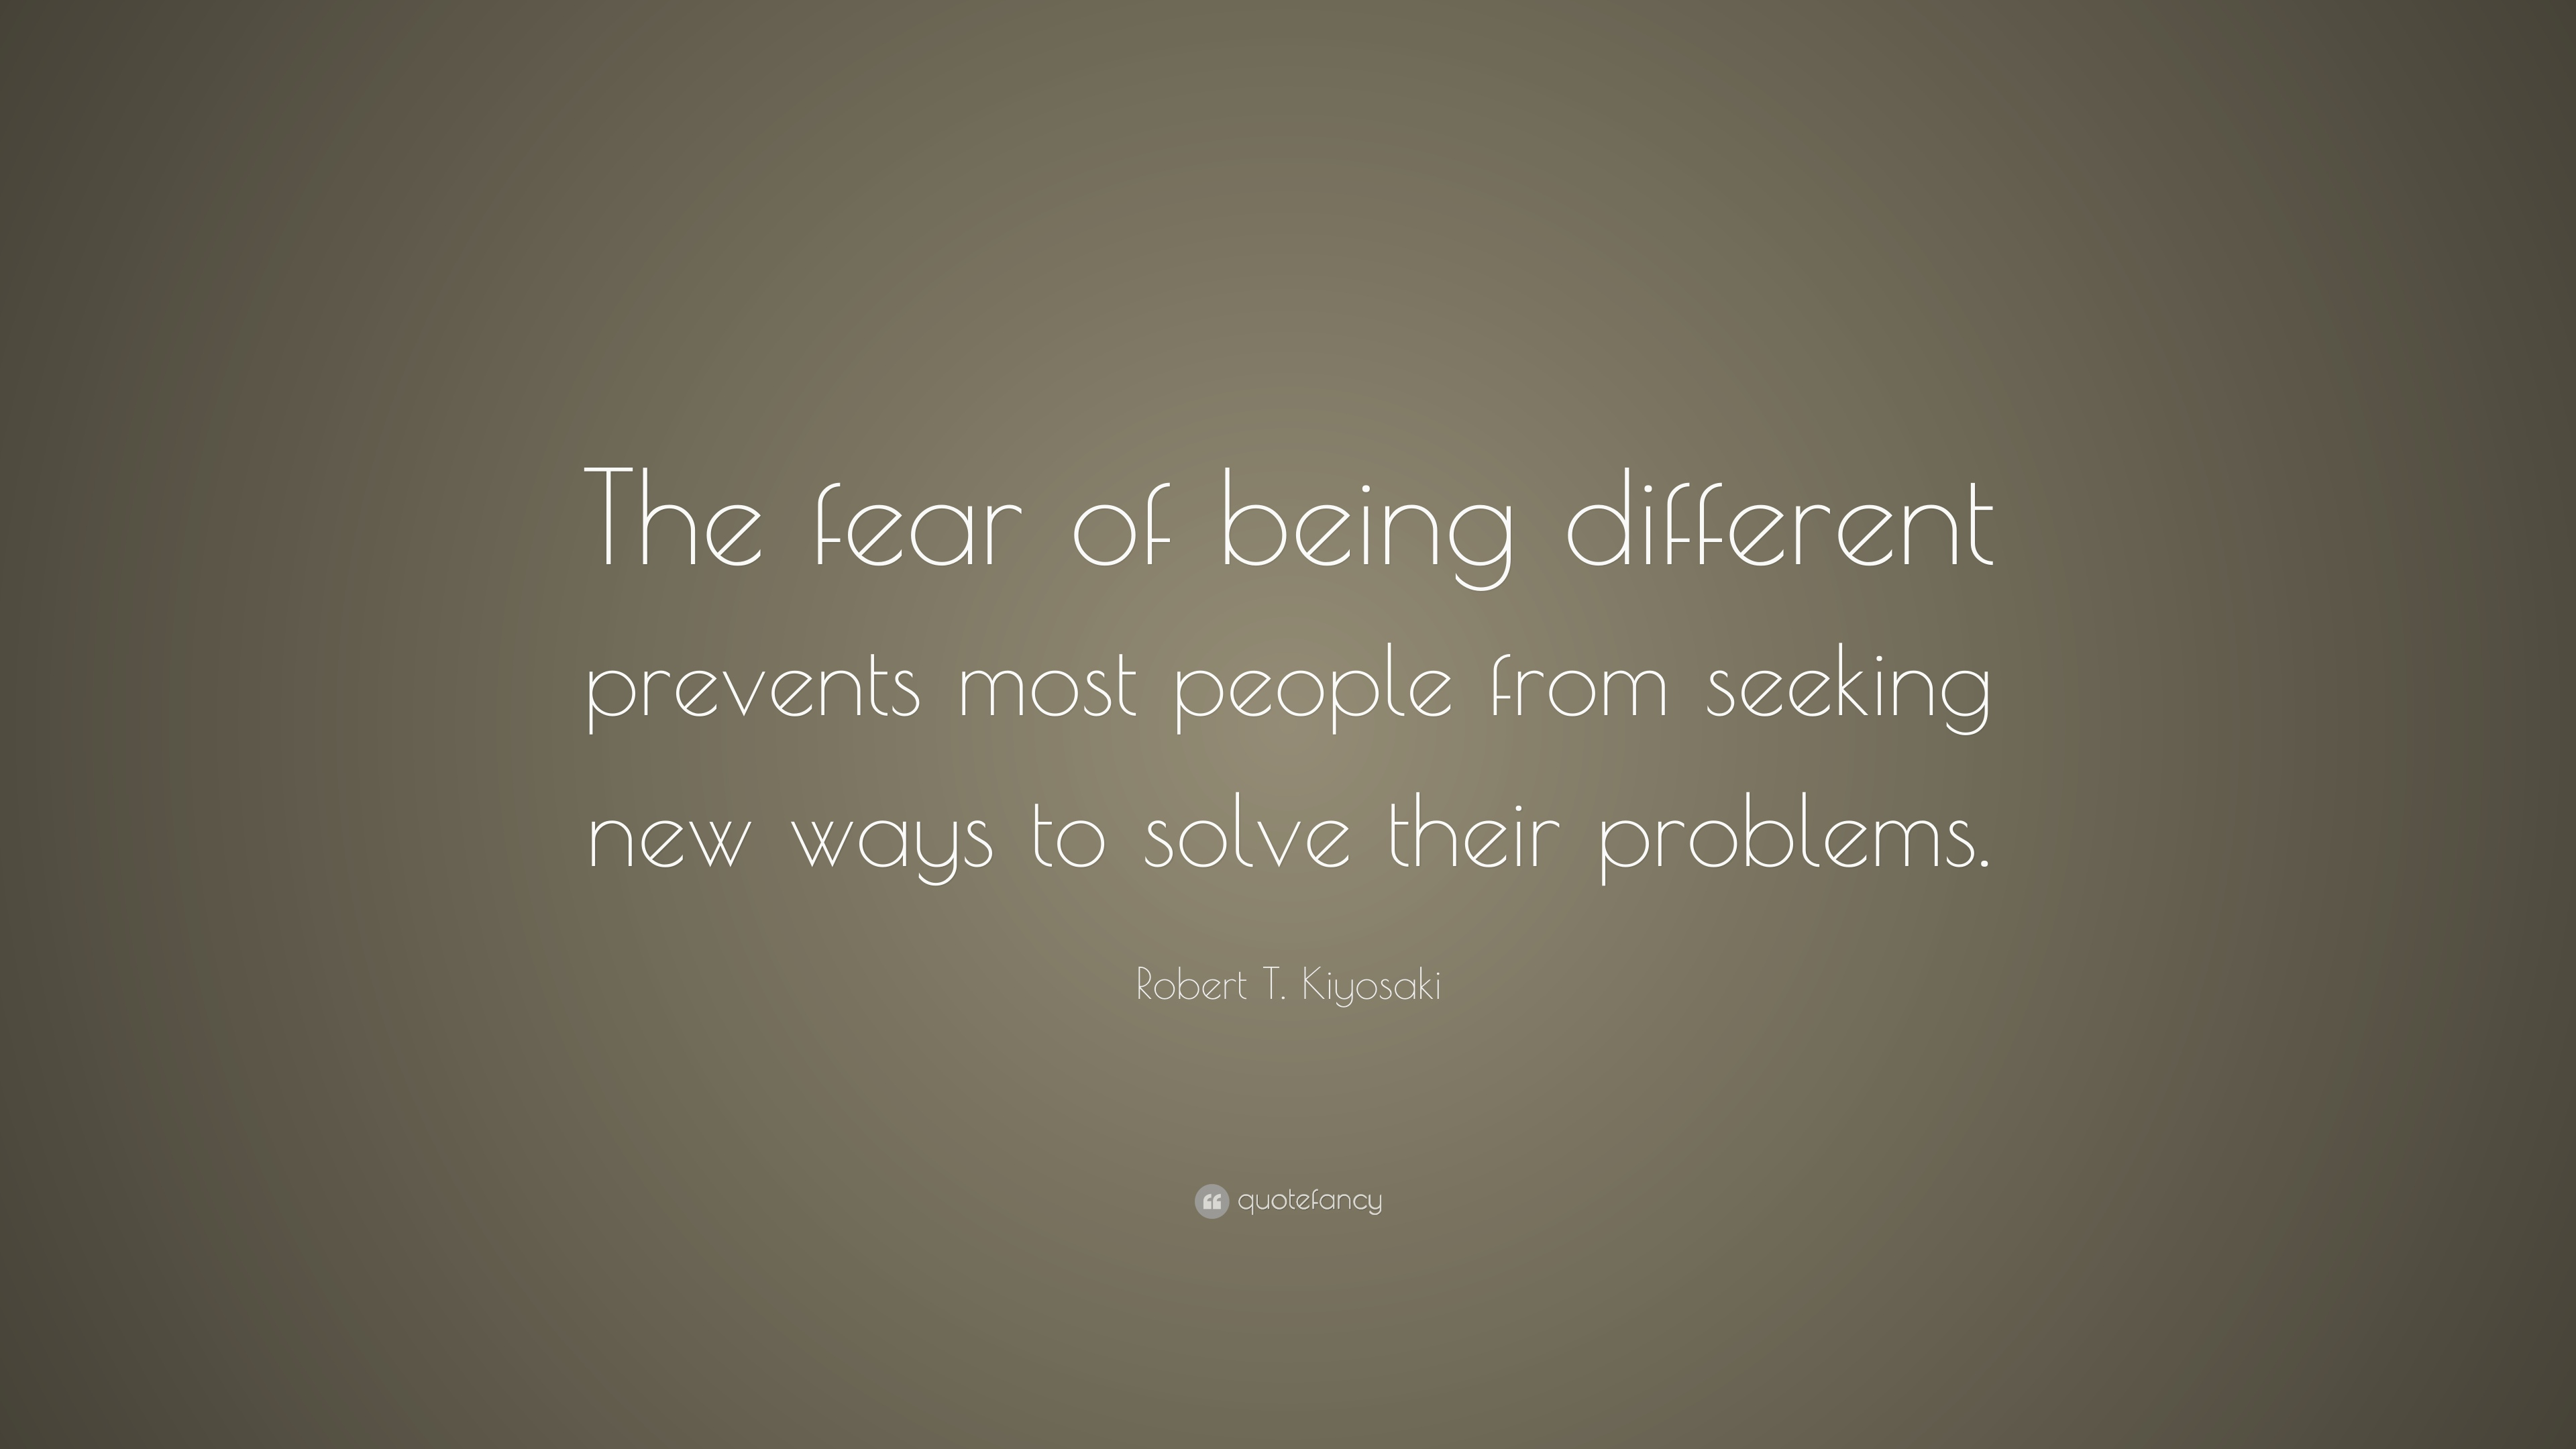 Robert T Kiyosaki Quote The Fear Of Being Different Prevents Most